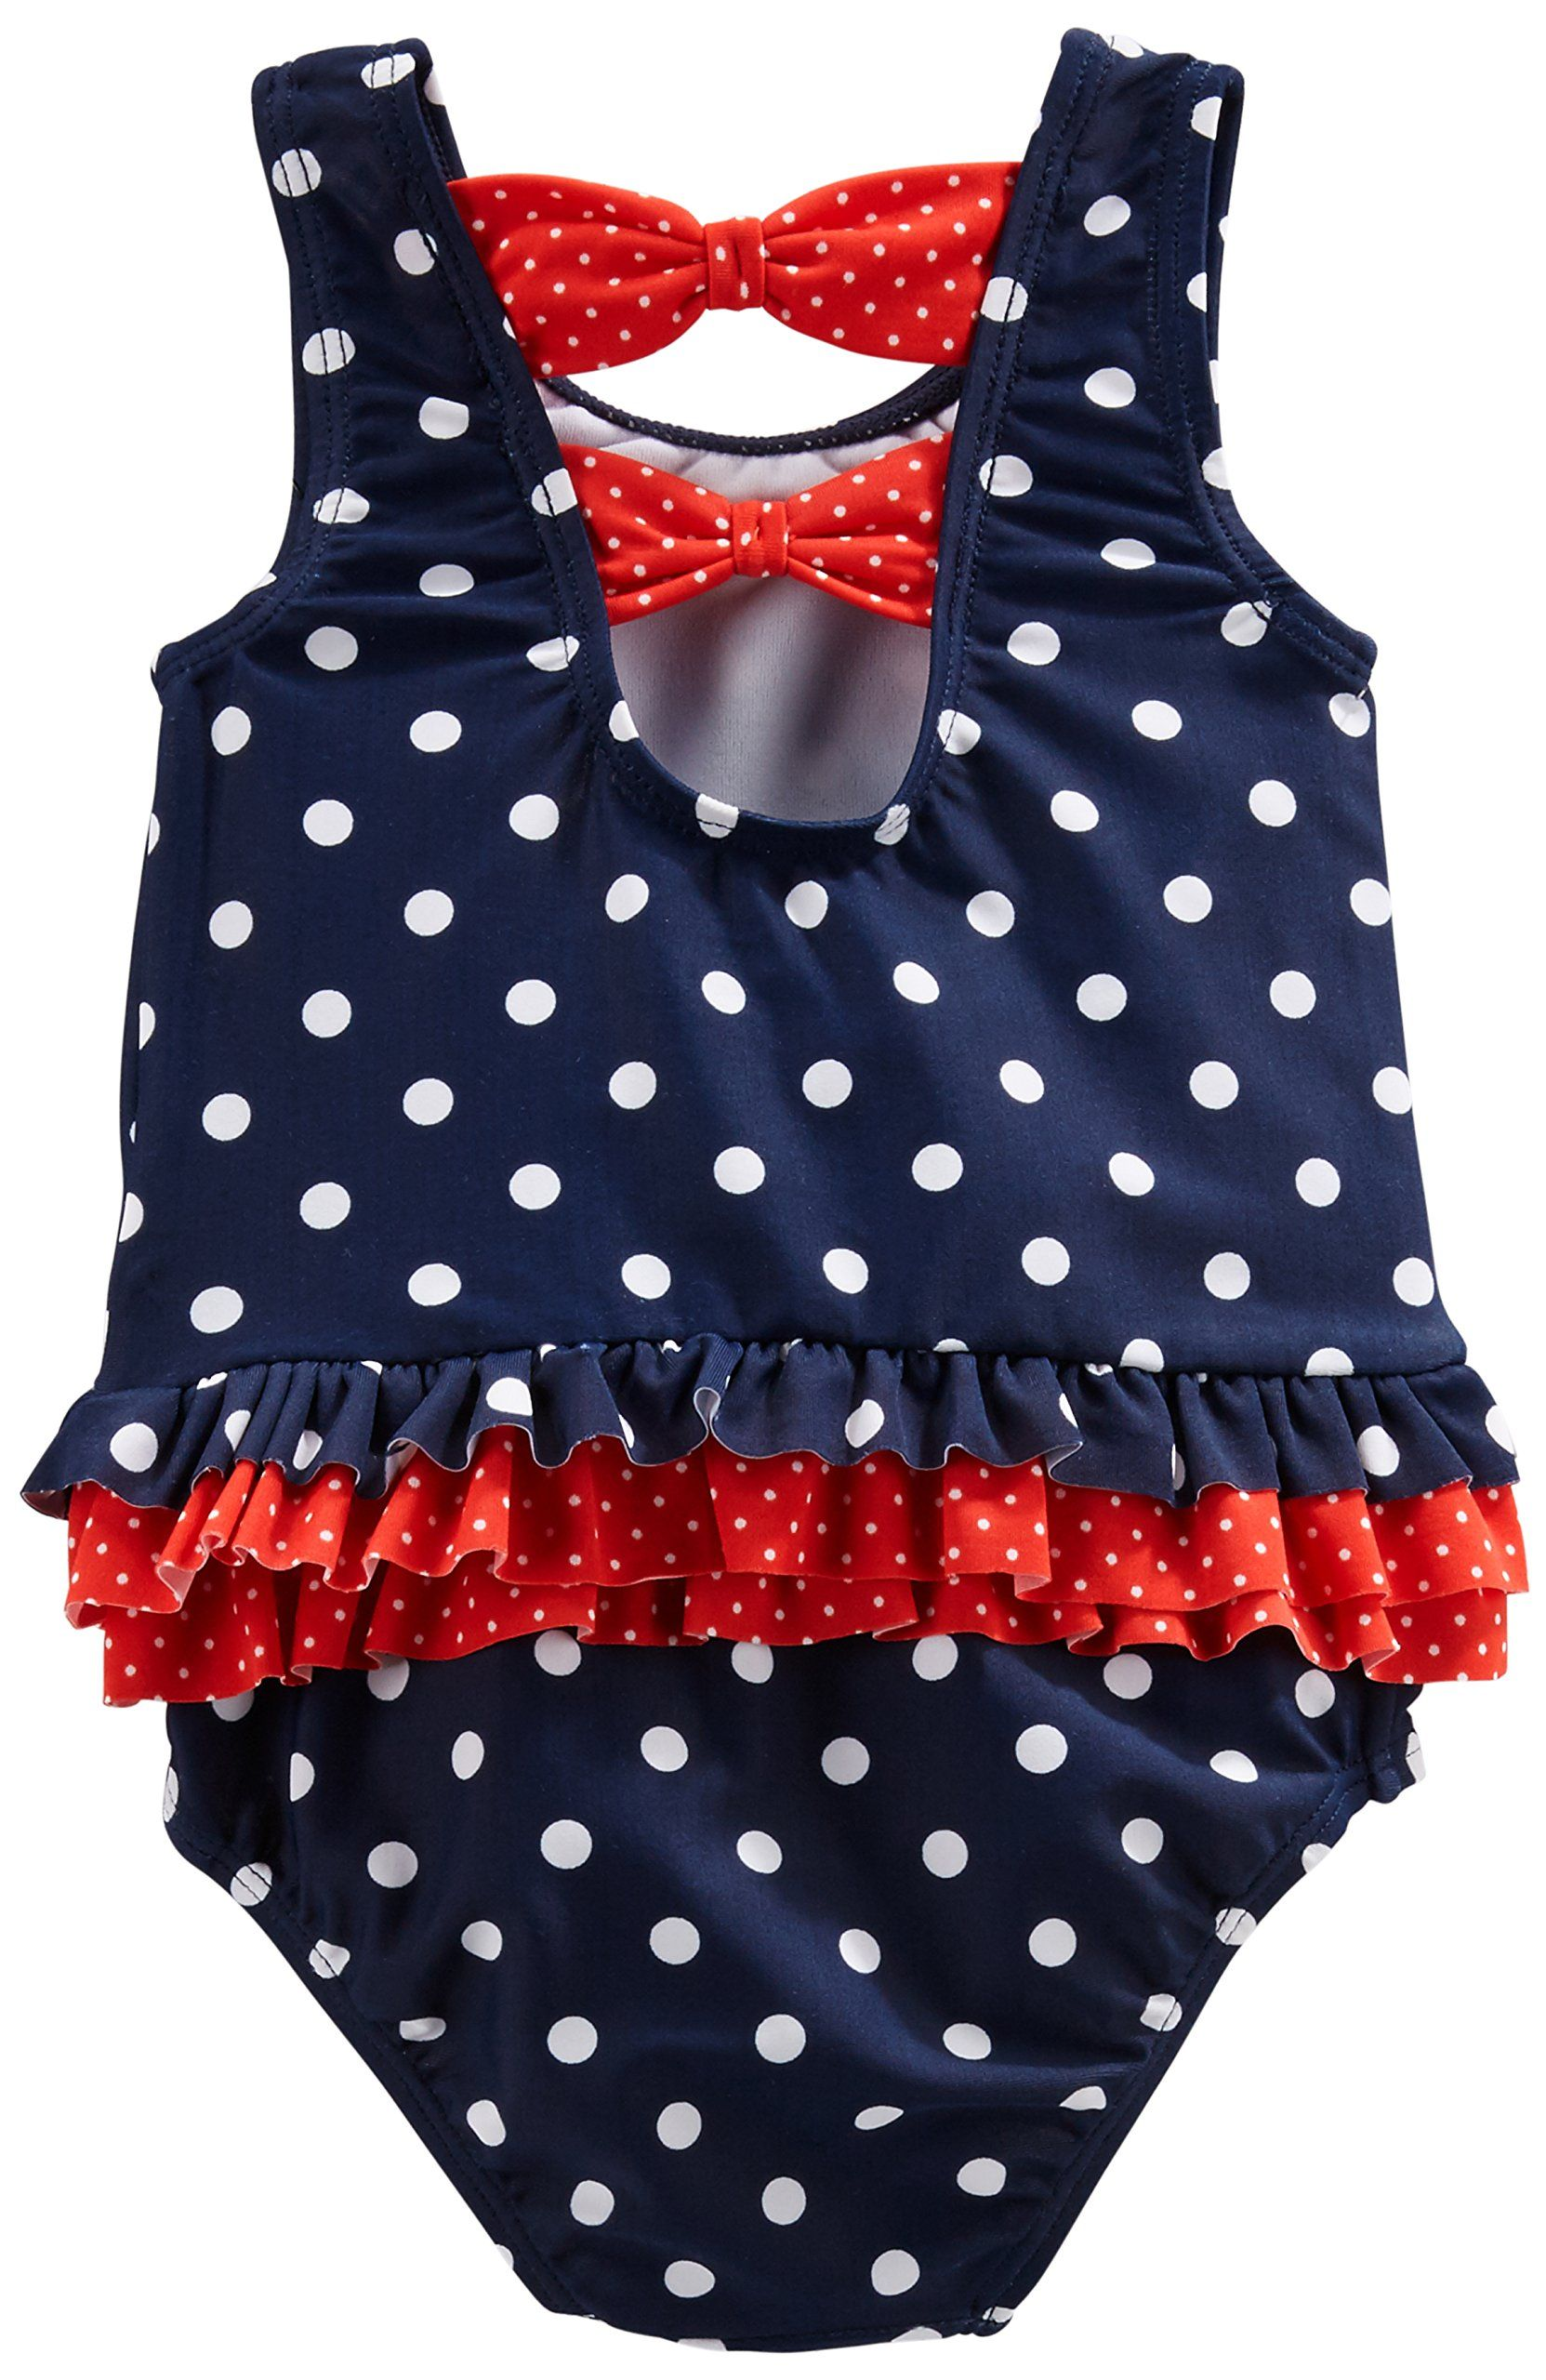 Baby & Toddler Clothing Baby Girl Swimsuit 3-6 Months Girls' Clothing (newborn-5t)